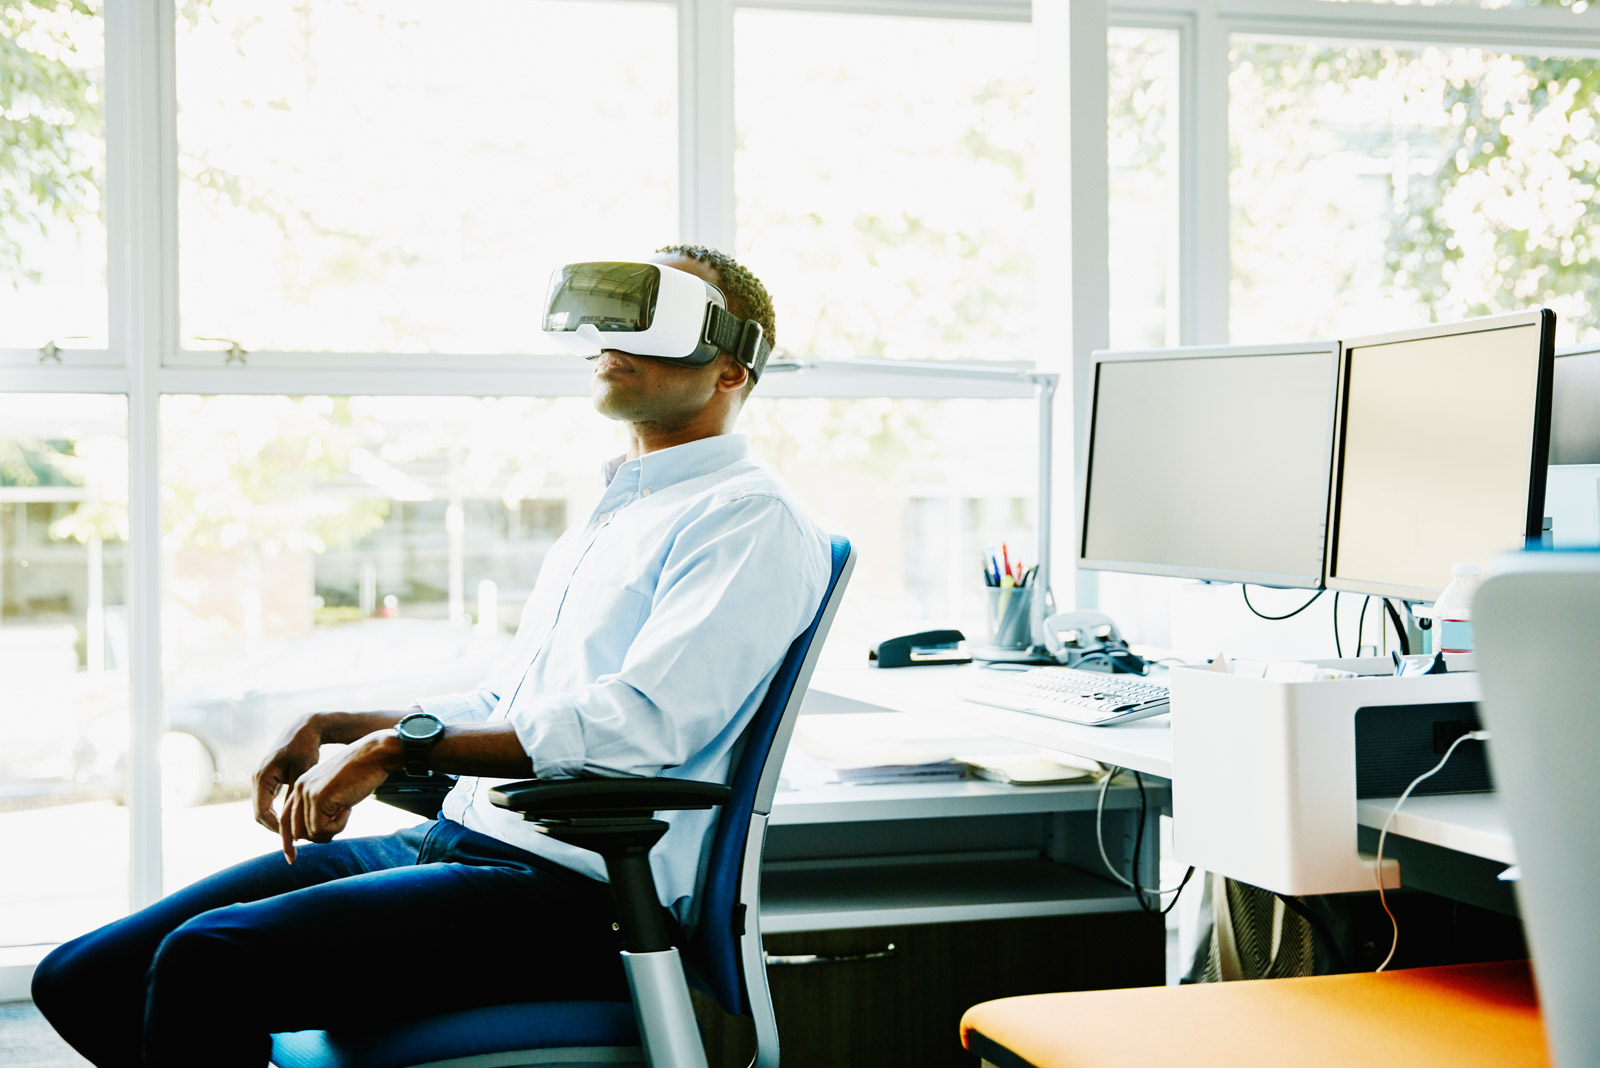 The digital future is changing the office